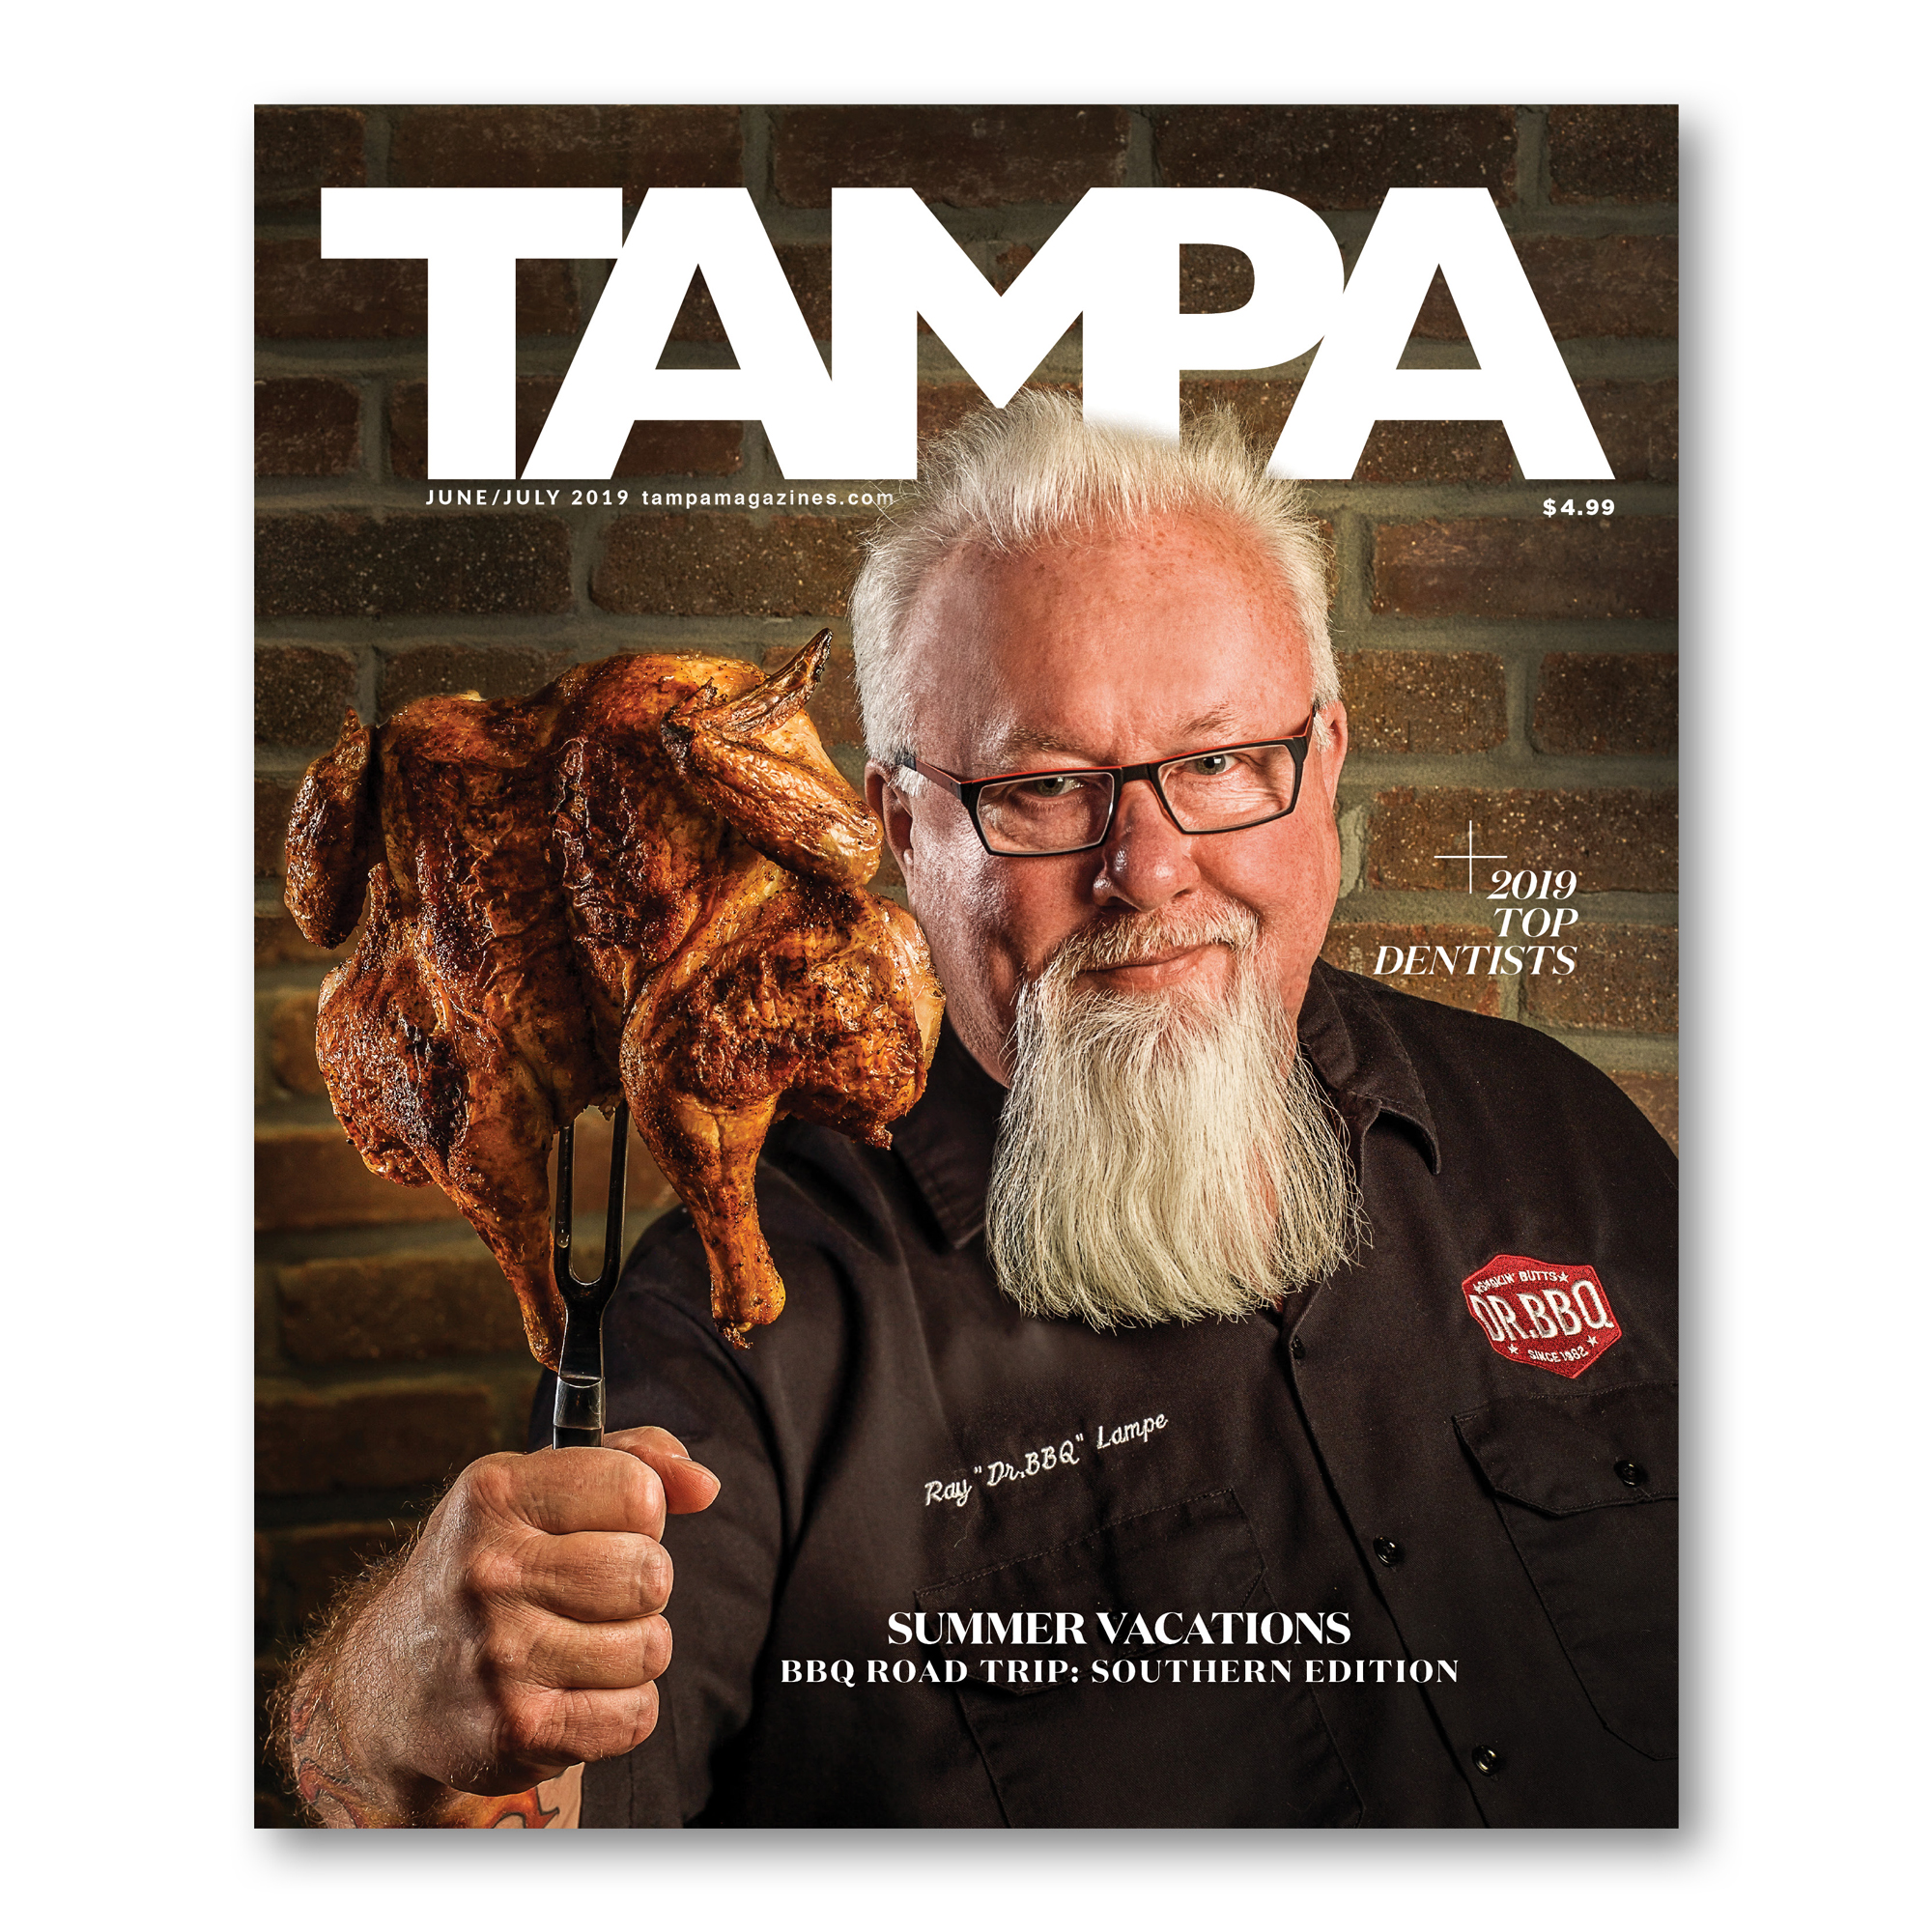 Tampa-Covers7.jpg